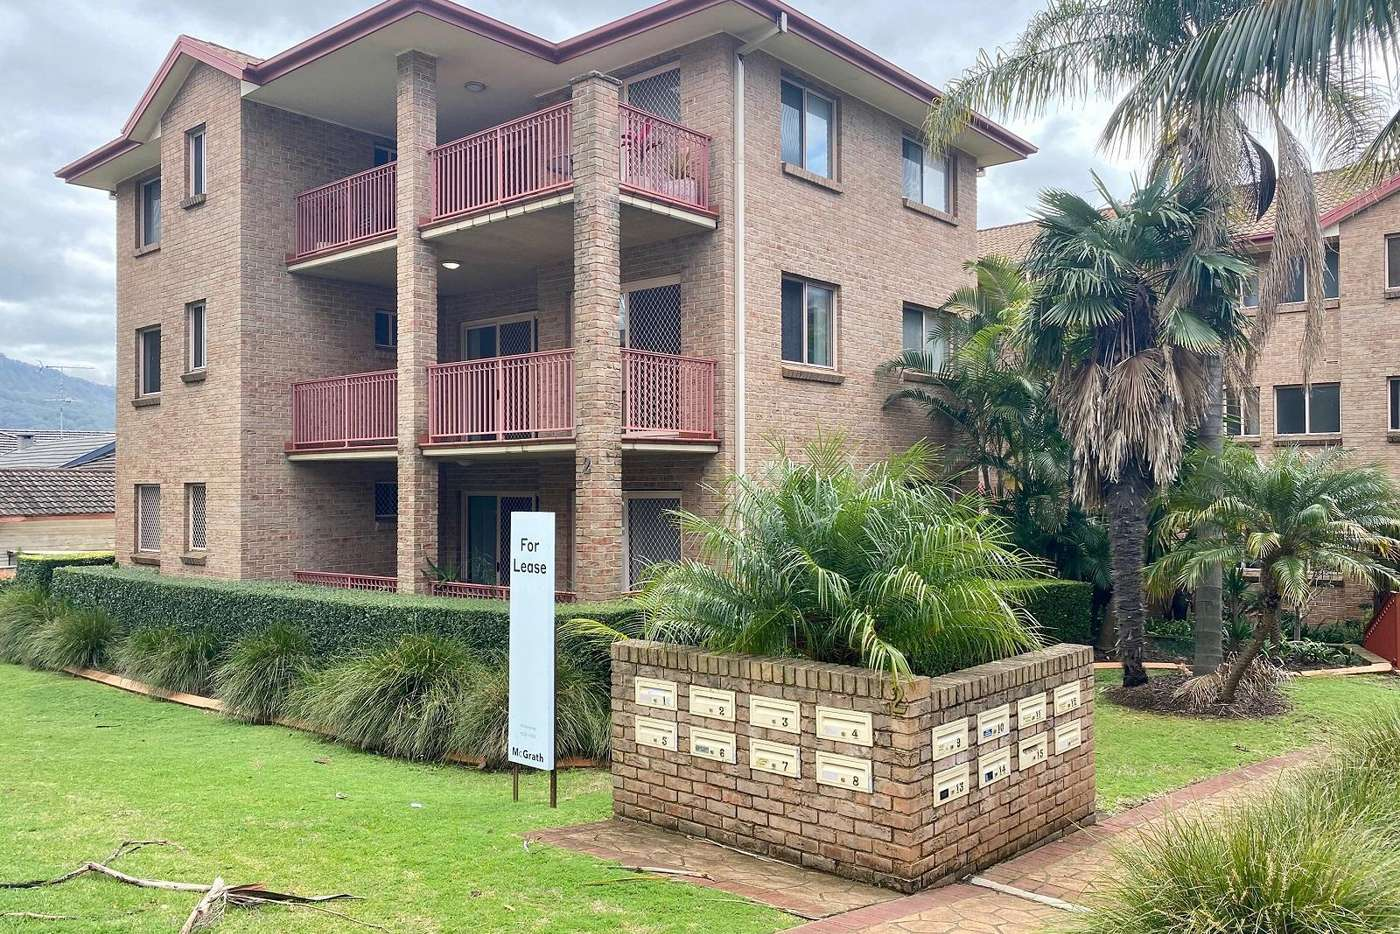 Main view of Homely apartment listing, 9/2 Edward Street, Wollongong NSW 2500